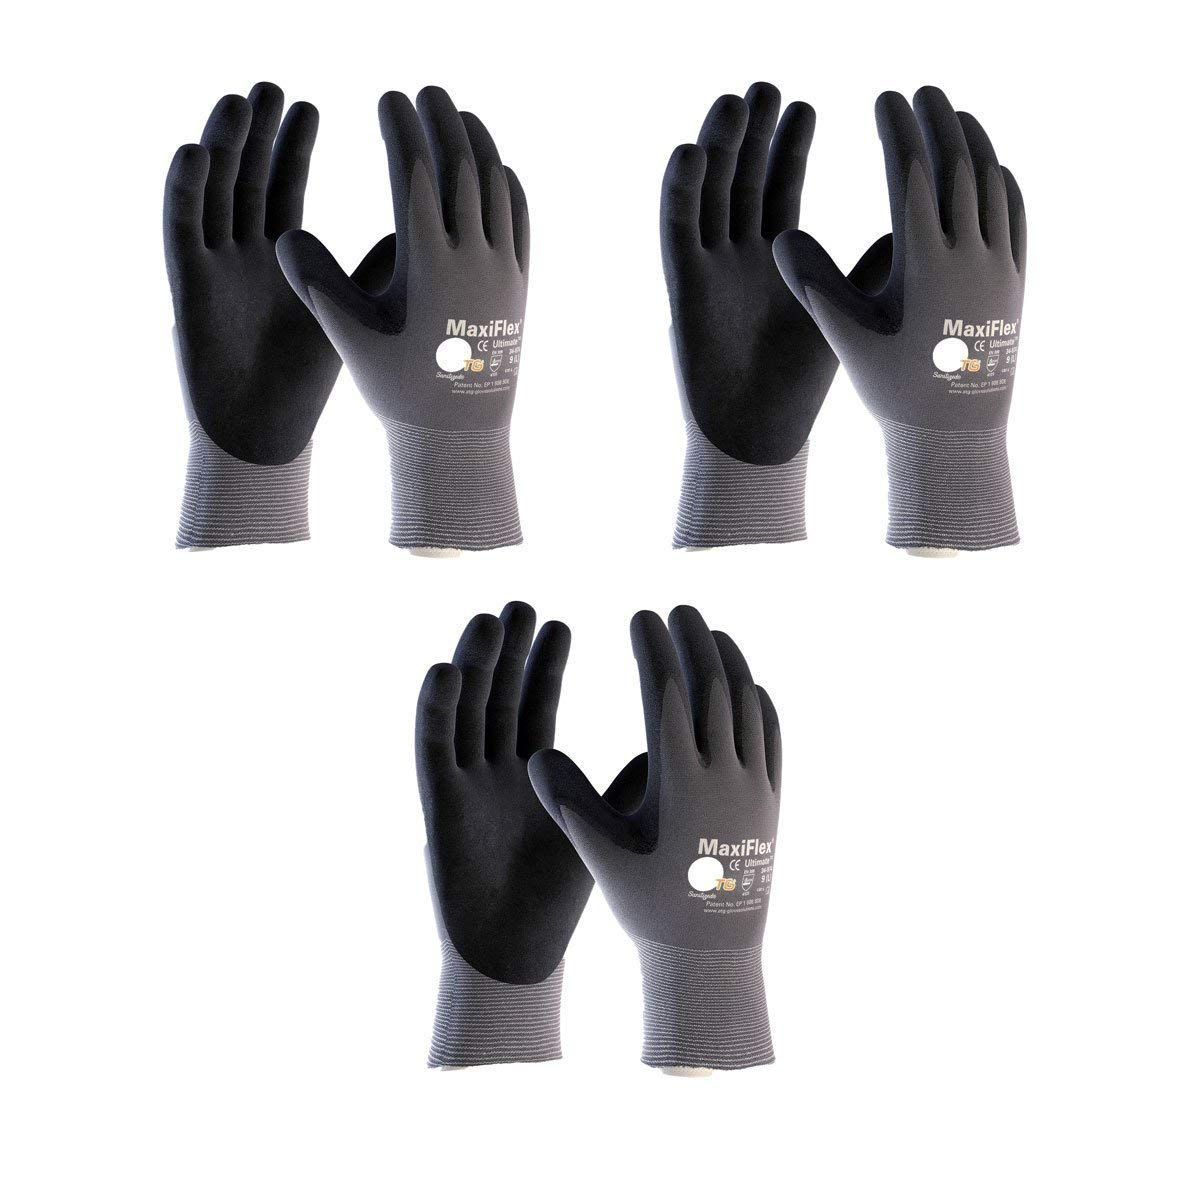 Maxiflex 34-874 Ultimate Nitrile Grip Work Gloves, Small, 3 Piece